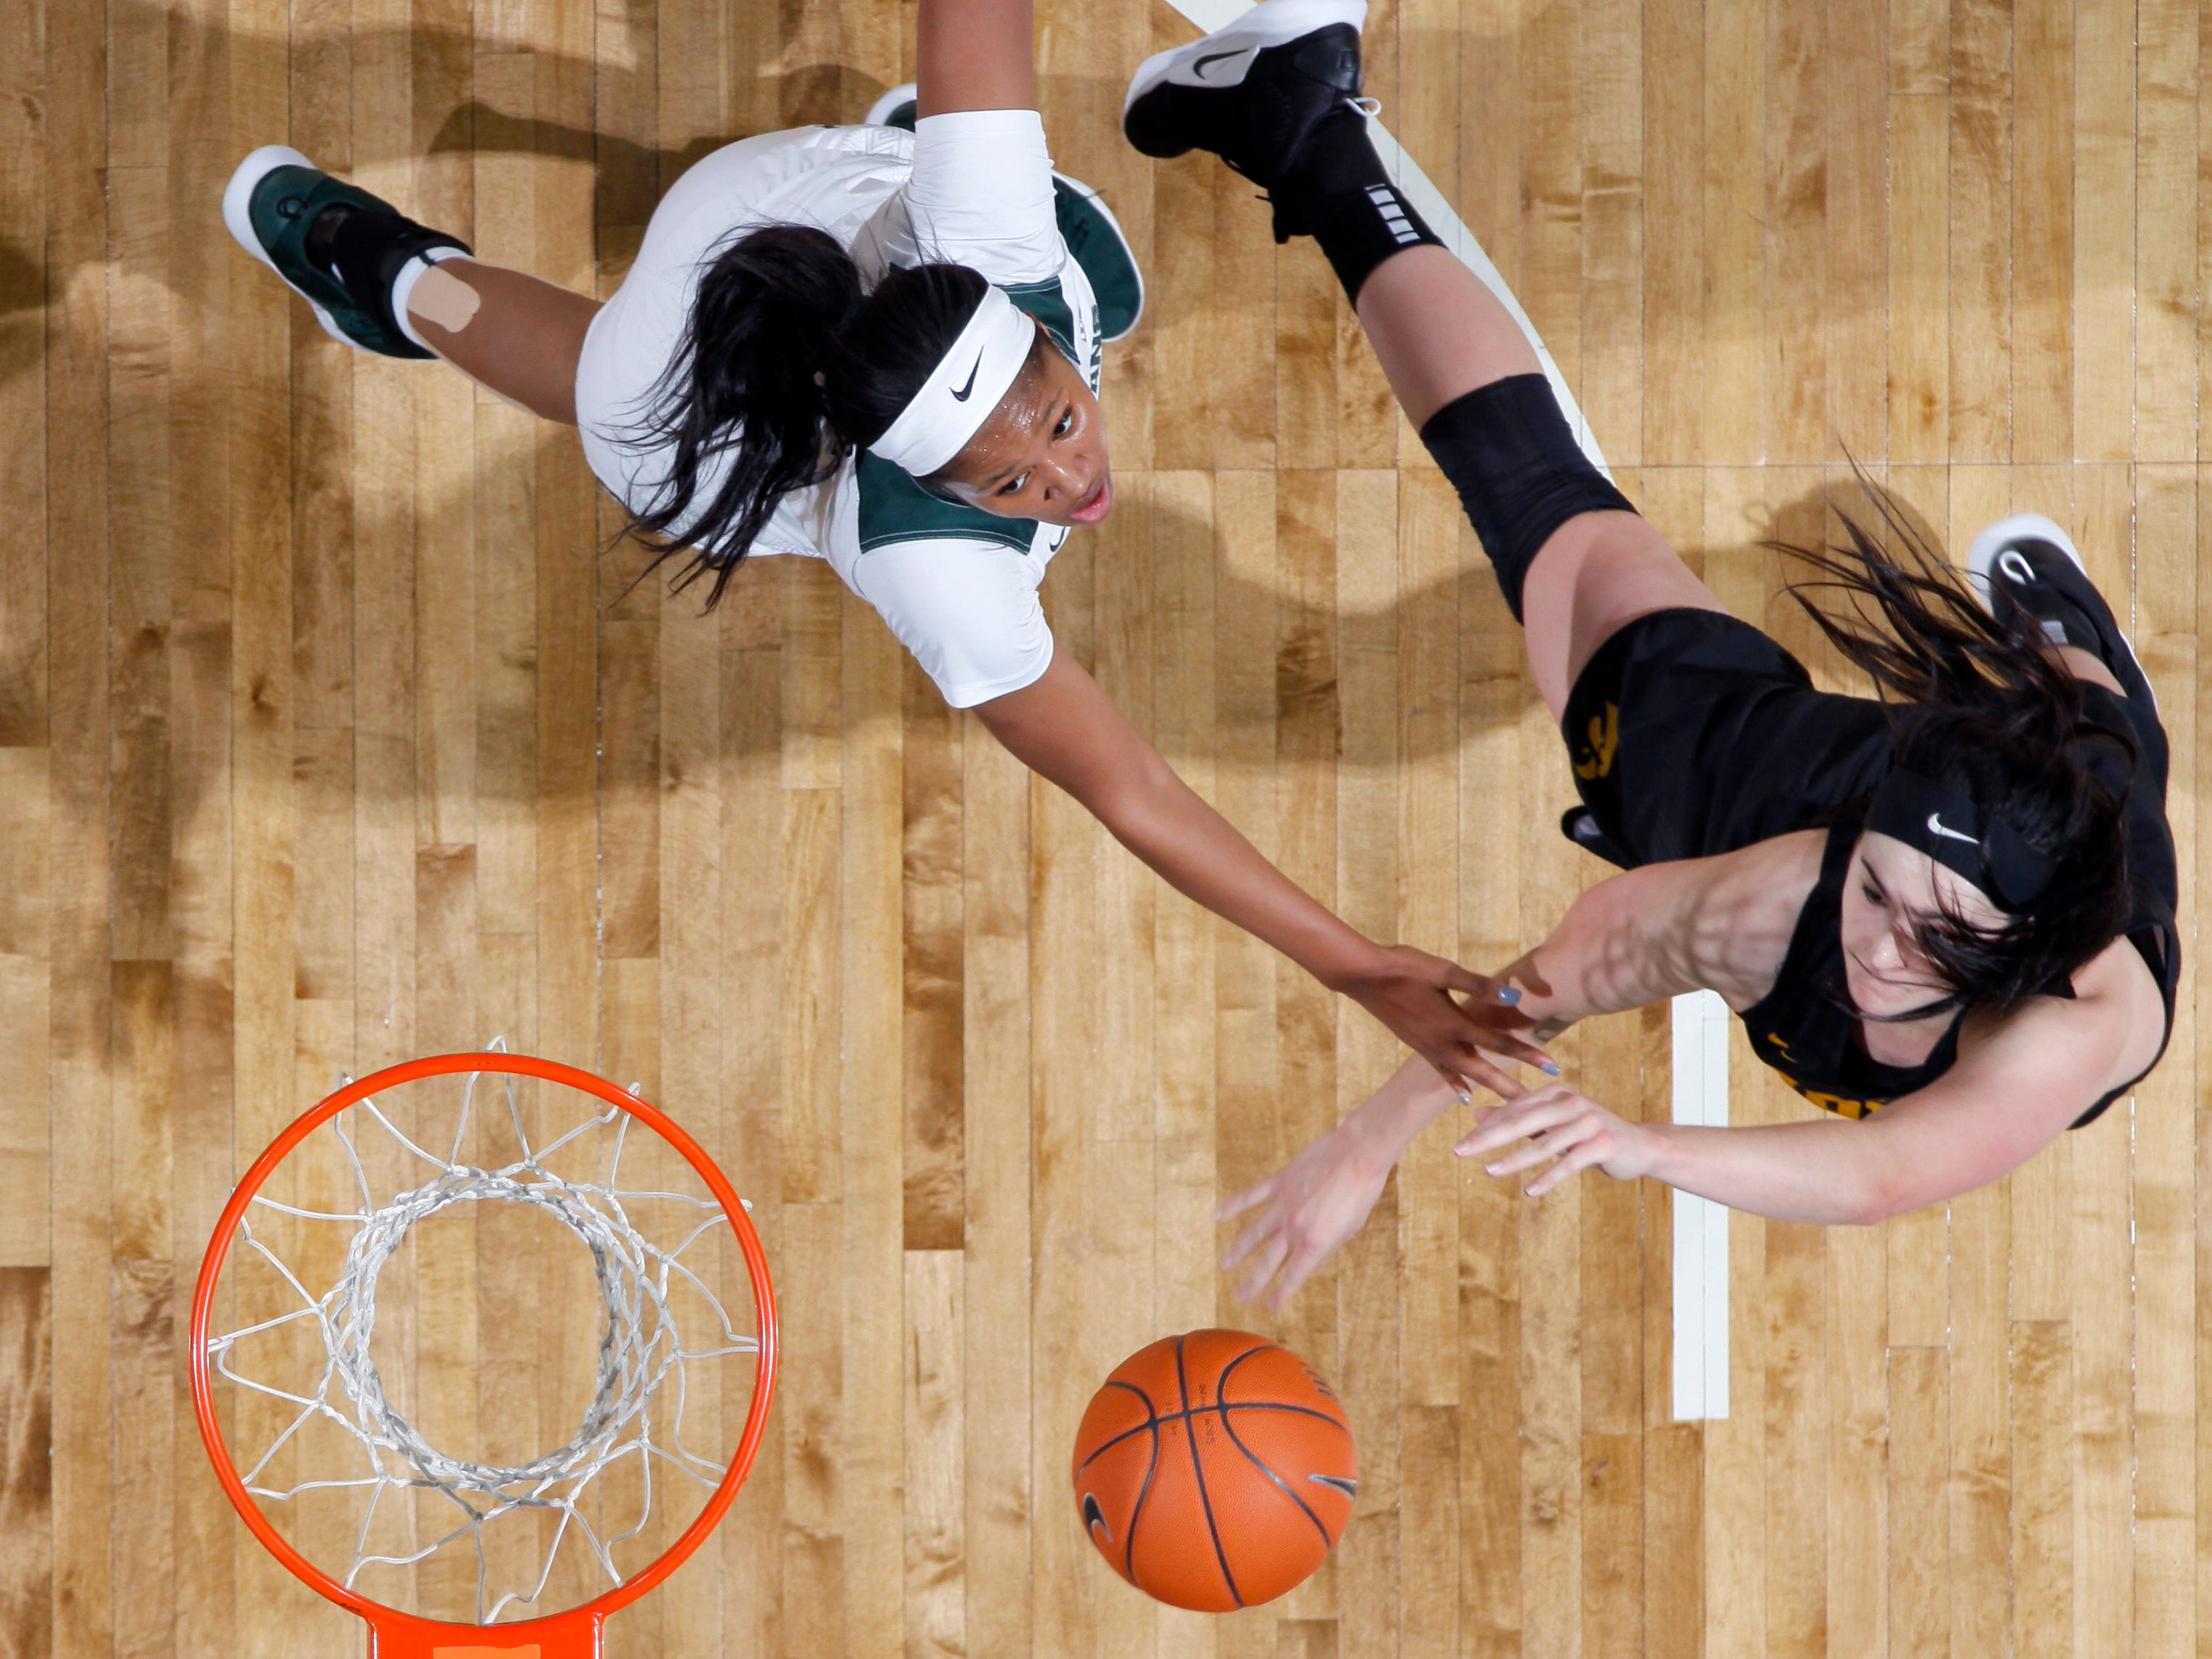 Iowa's Megan Gustafson, right, shoots against Michigan State's Sidney Cooks during an NCAA college basketball game, Sunday, Dec. 30, 2018, in East Lansing, Mich. Michigan State won 84-70. (AP Photo/Al Goldis)